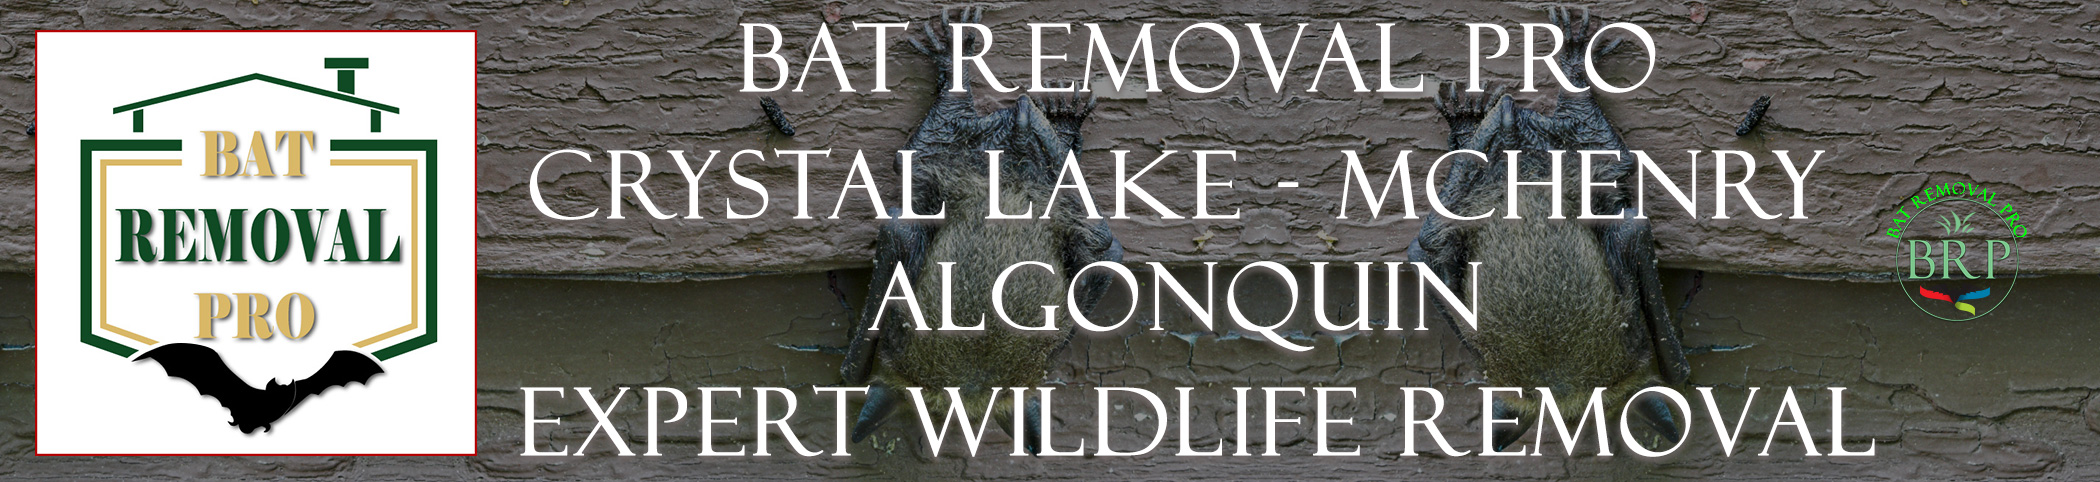 CRYSTAL-LAKE-bat-removal-at-bat-removal-pro-header-image